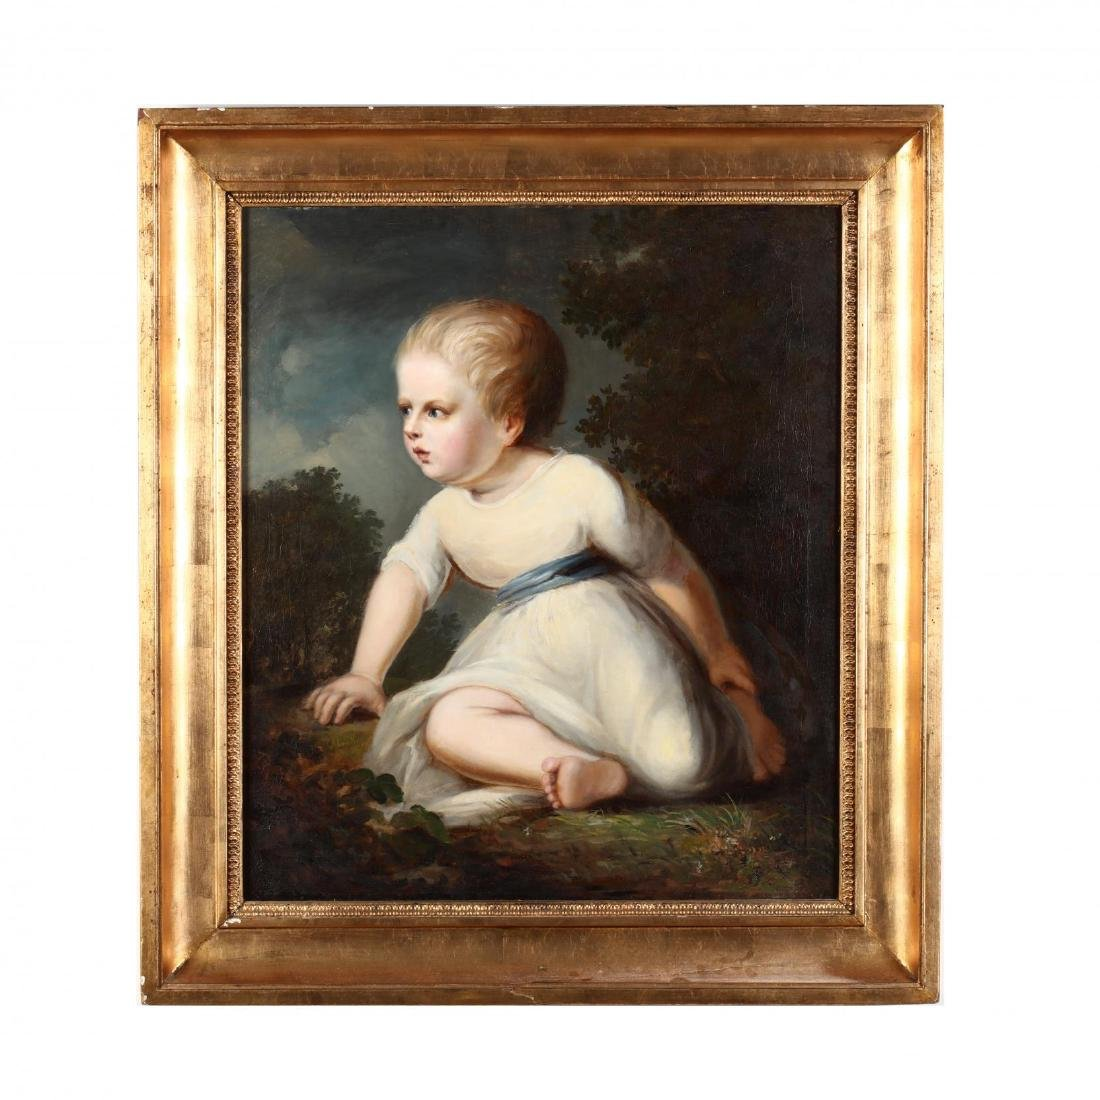 An English School Portrait of a Young Child